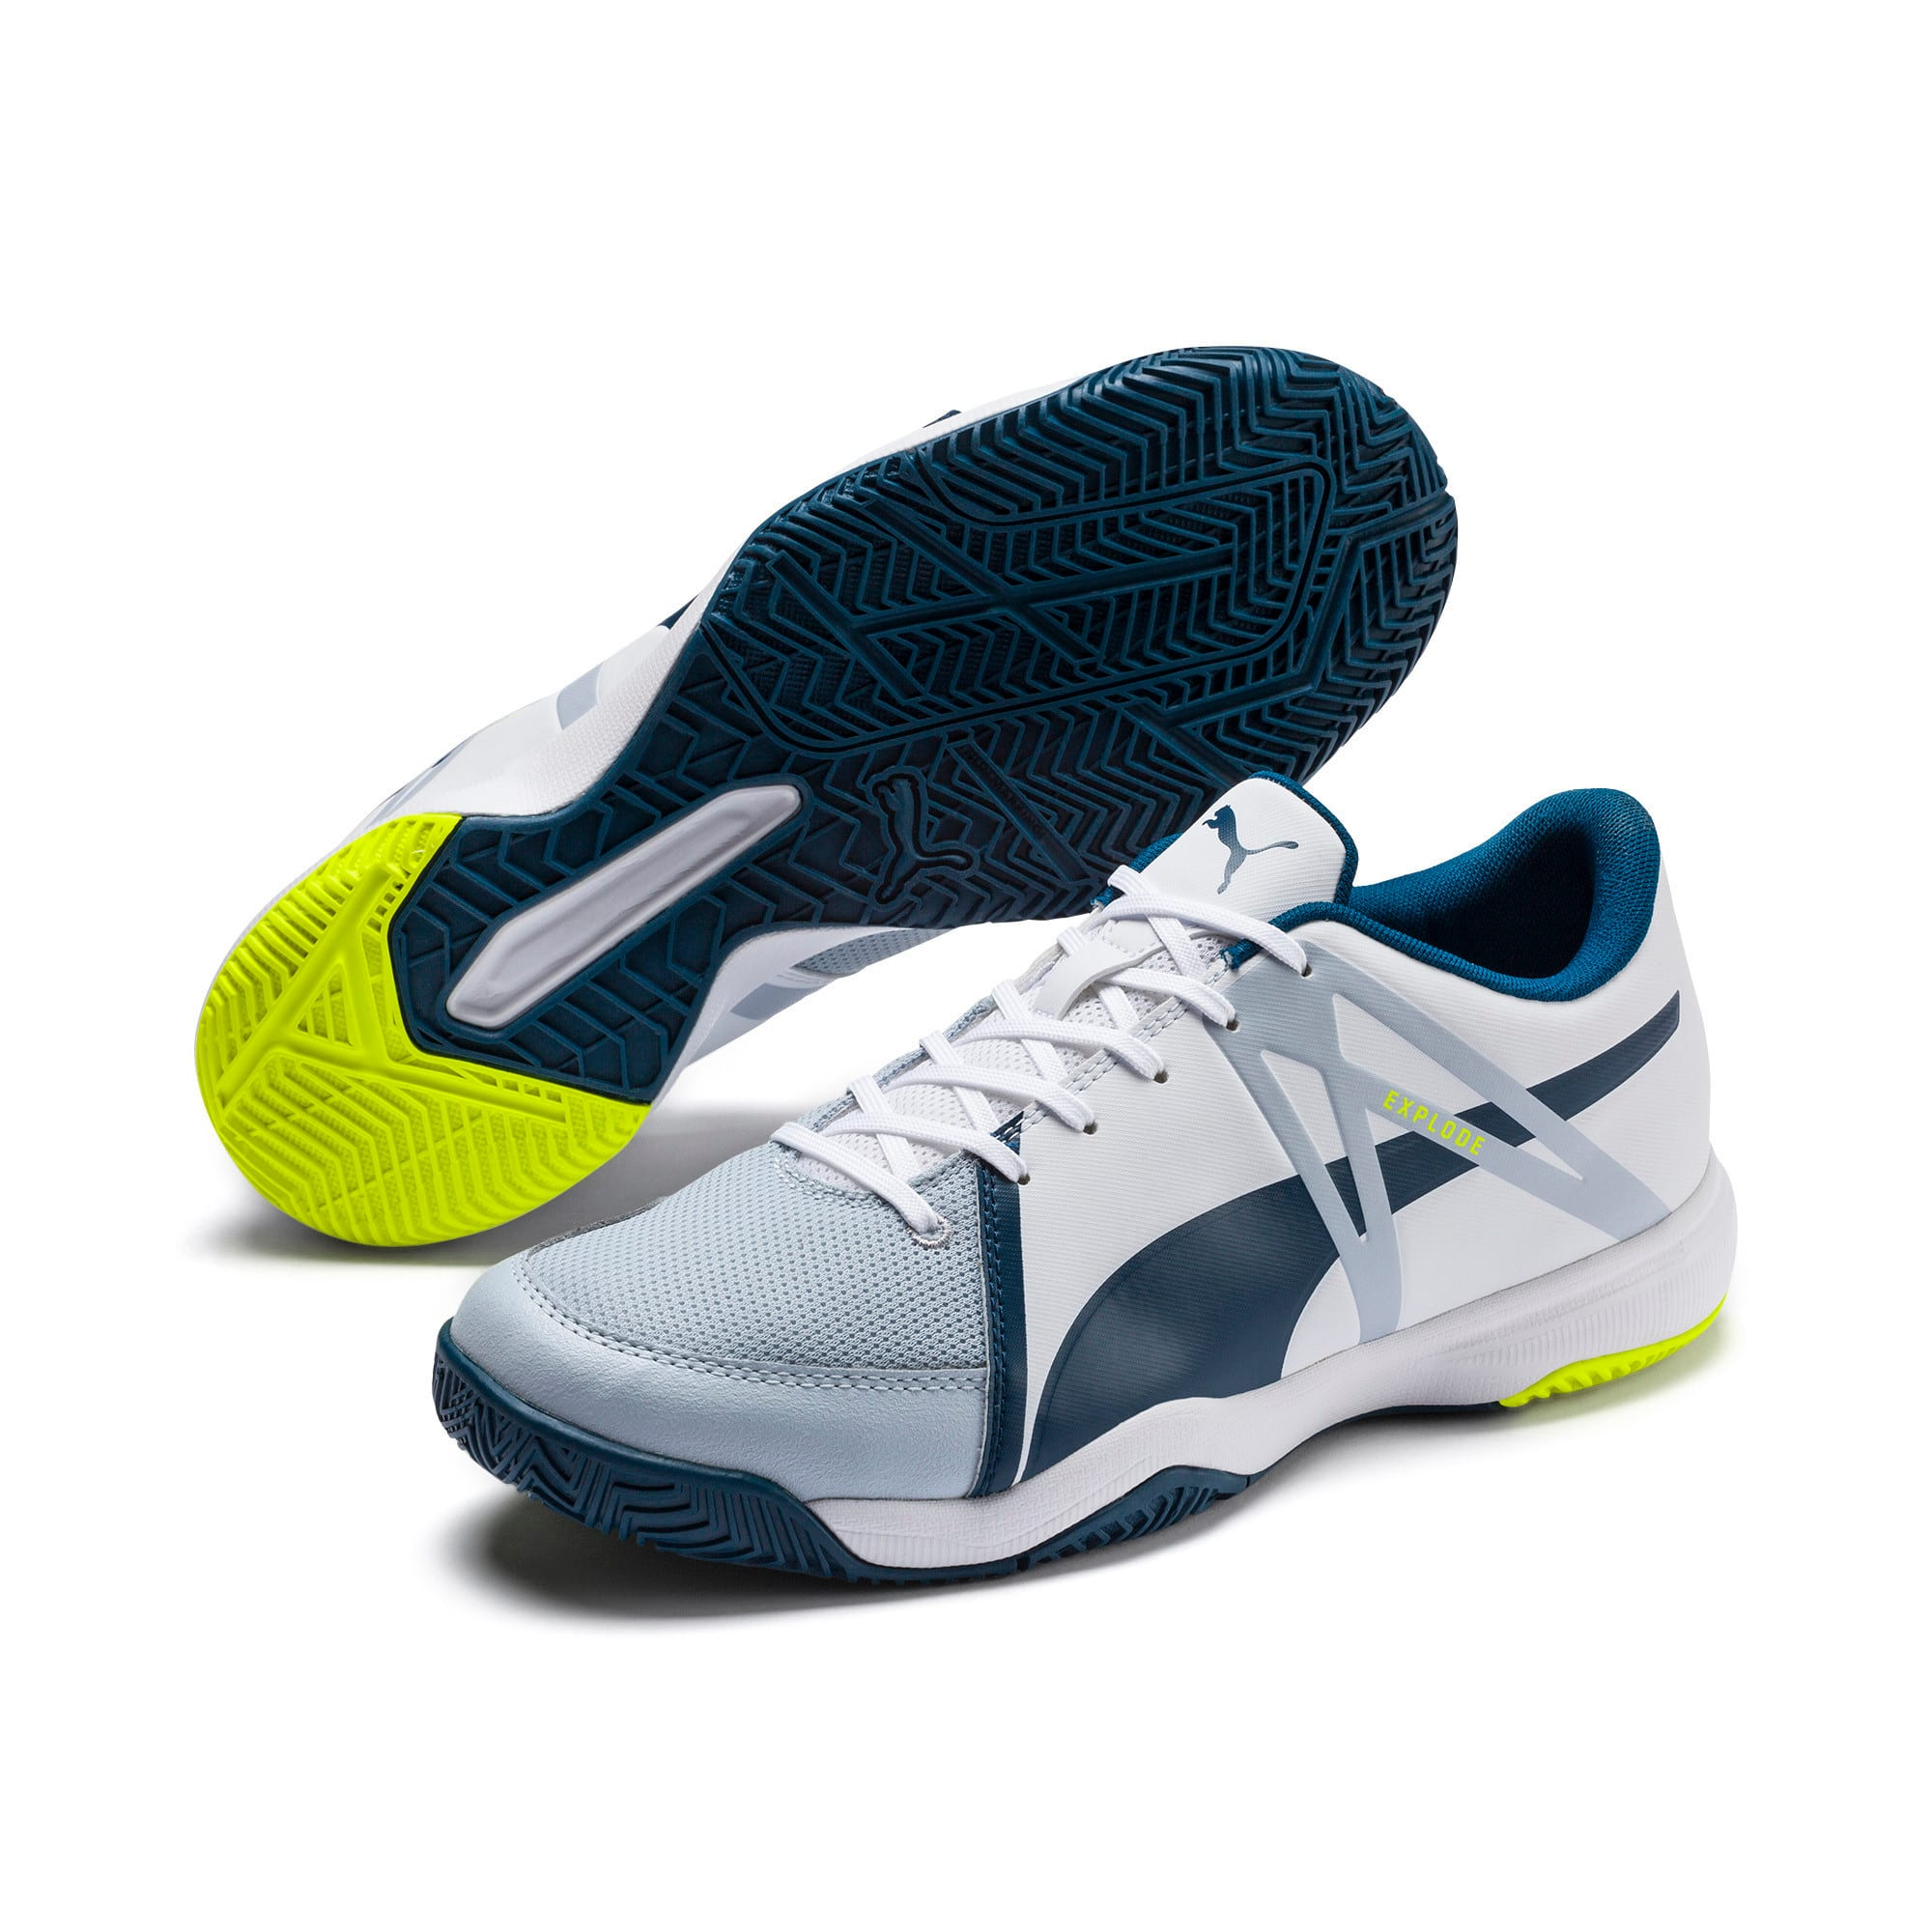 Thumbnail 8 of Explode XT 3 Men's Indoor Sports Performance Trainers, White-Grey-Yellow-Gibraltar, medium-IND